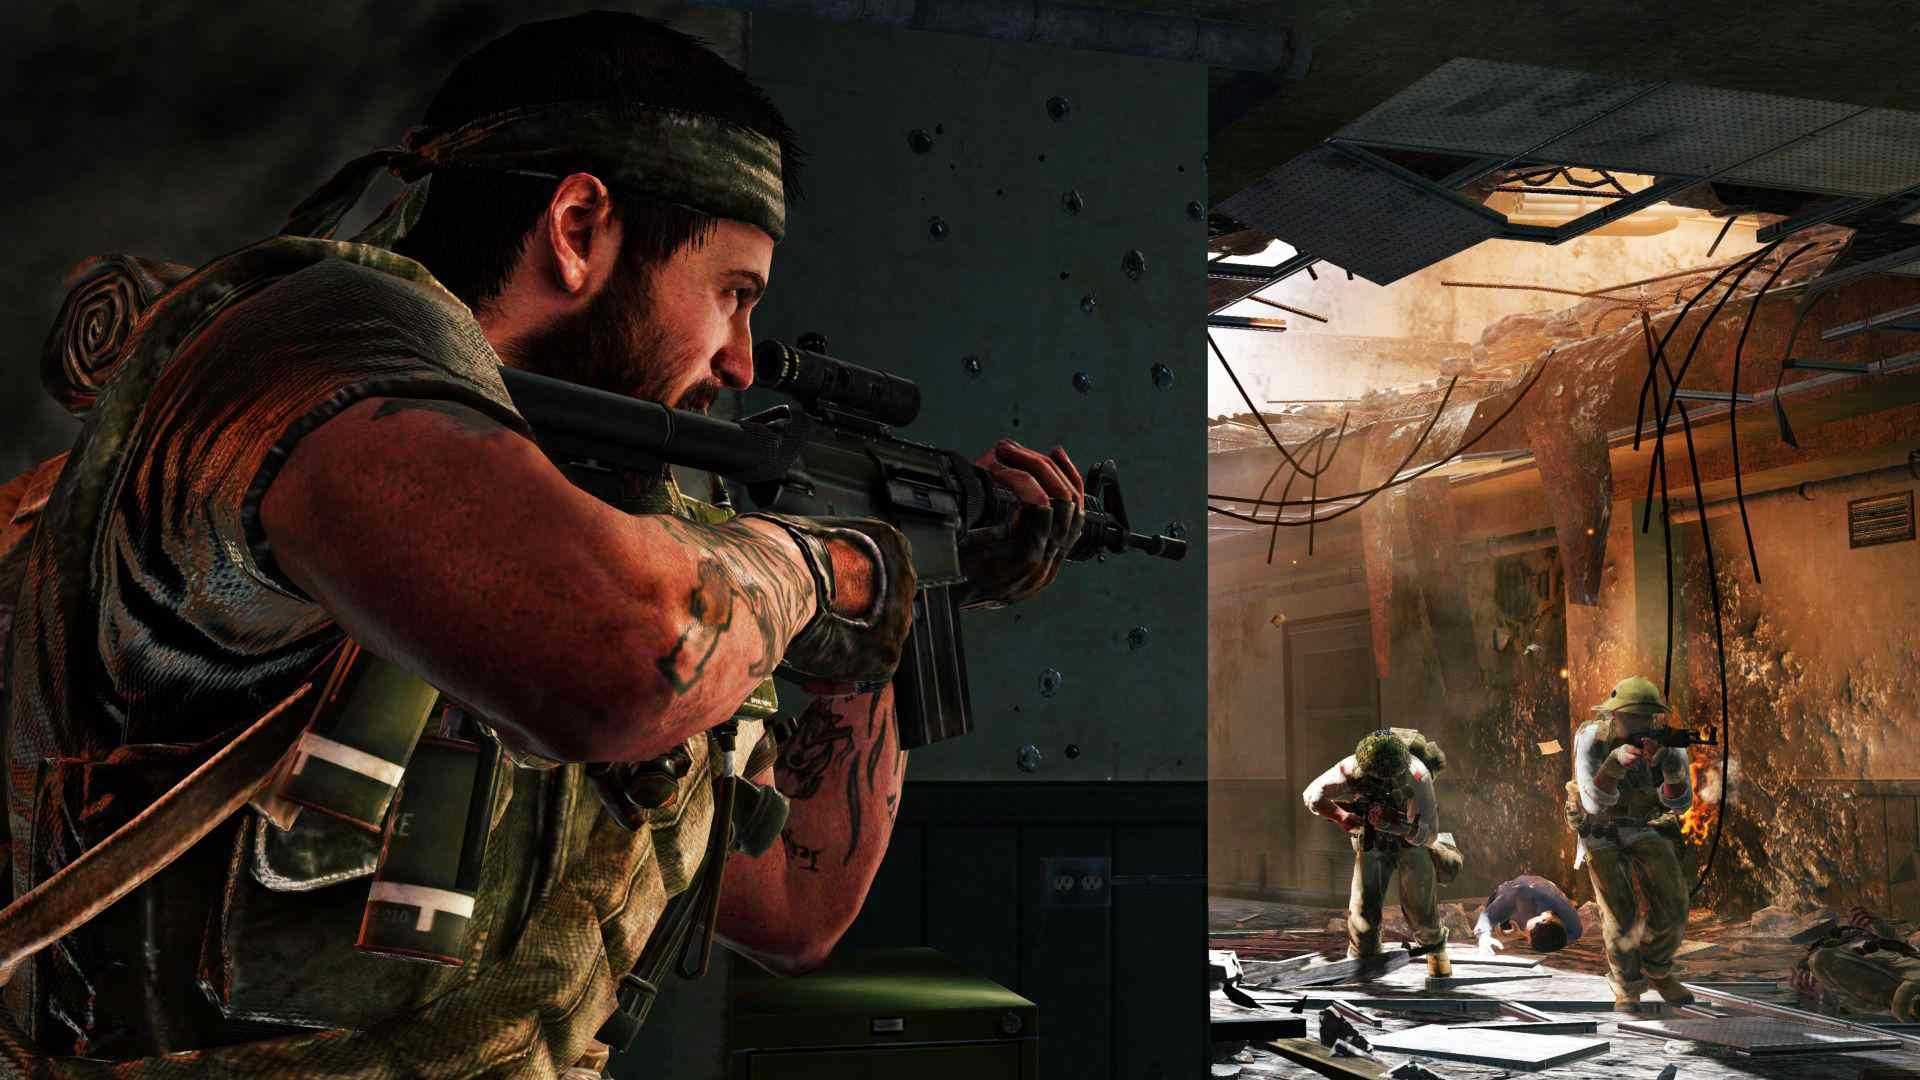 Call Of Duty Black Ops Ps3 Cheats Guide